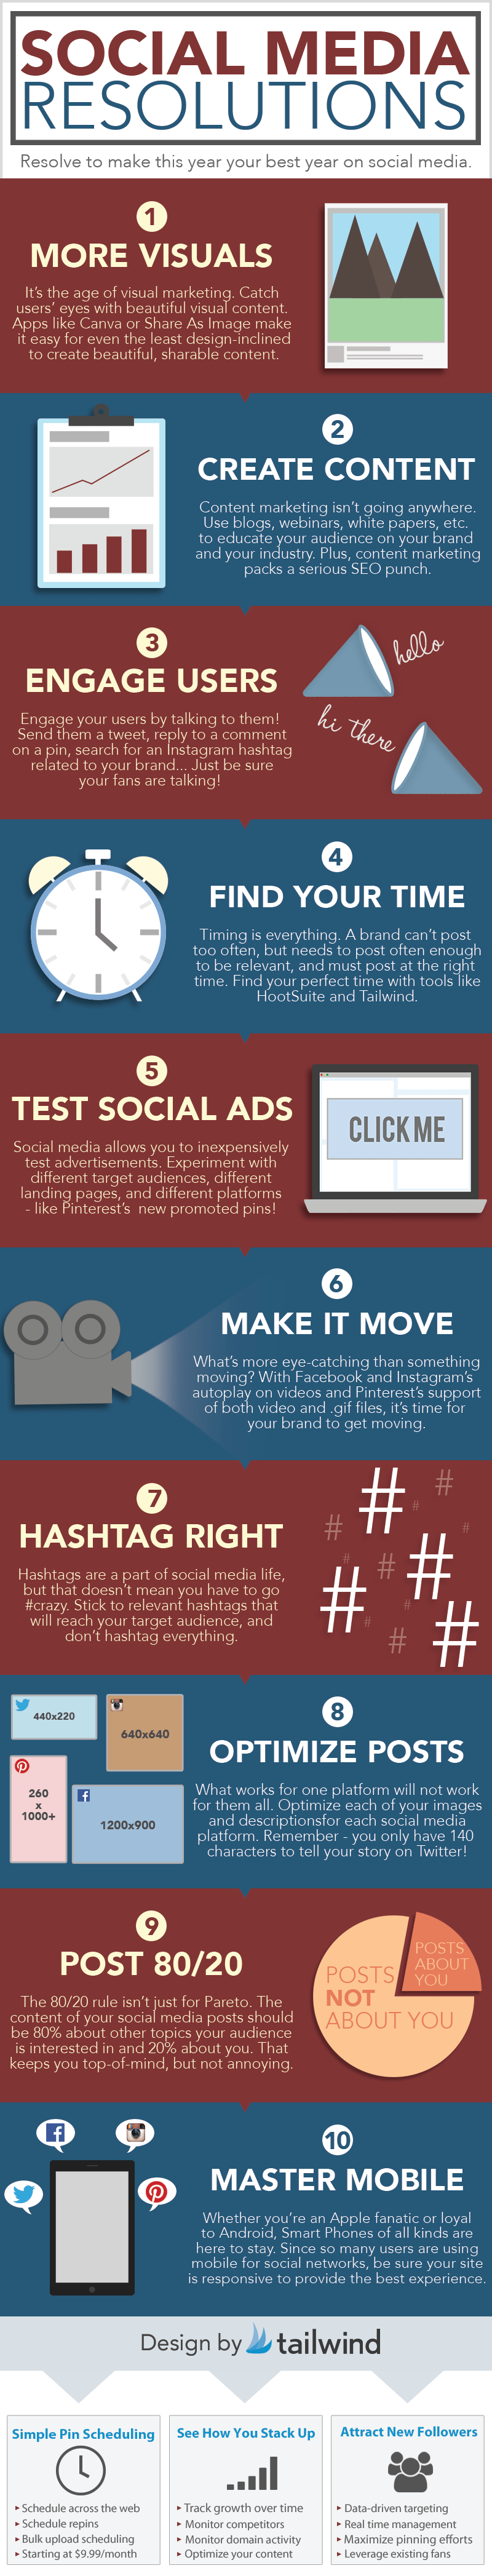 Social Media New Year Resolutions   The Clive Roach Blog Social Media New Year Resolutions infographic by tailwind